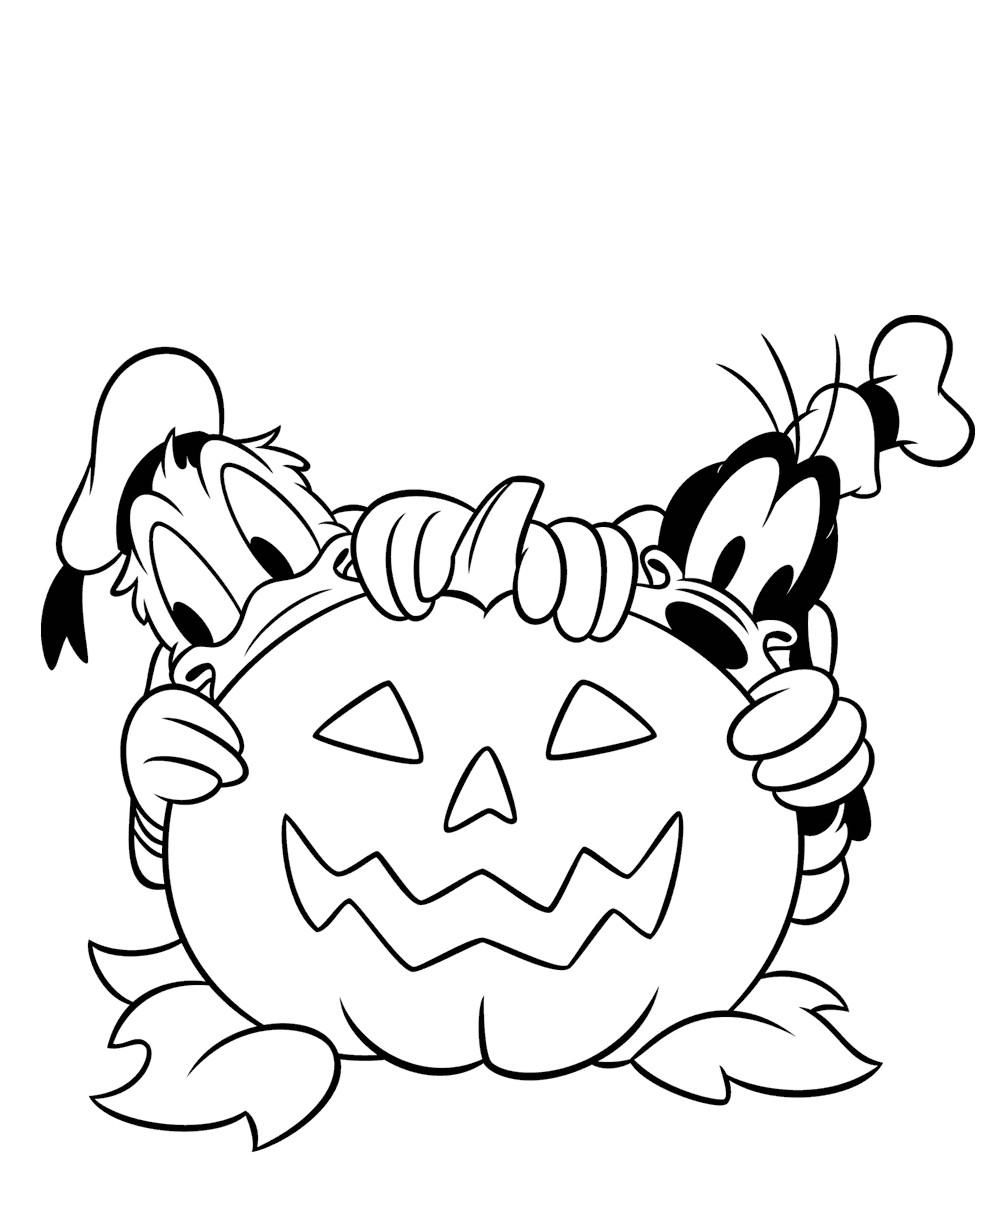 Coloriages Pour Halloween - Disney Magic tout Dessin Walt Disney À Imprimer